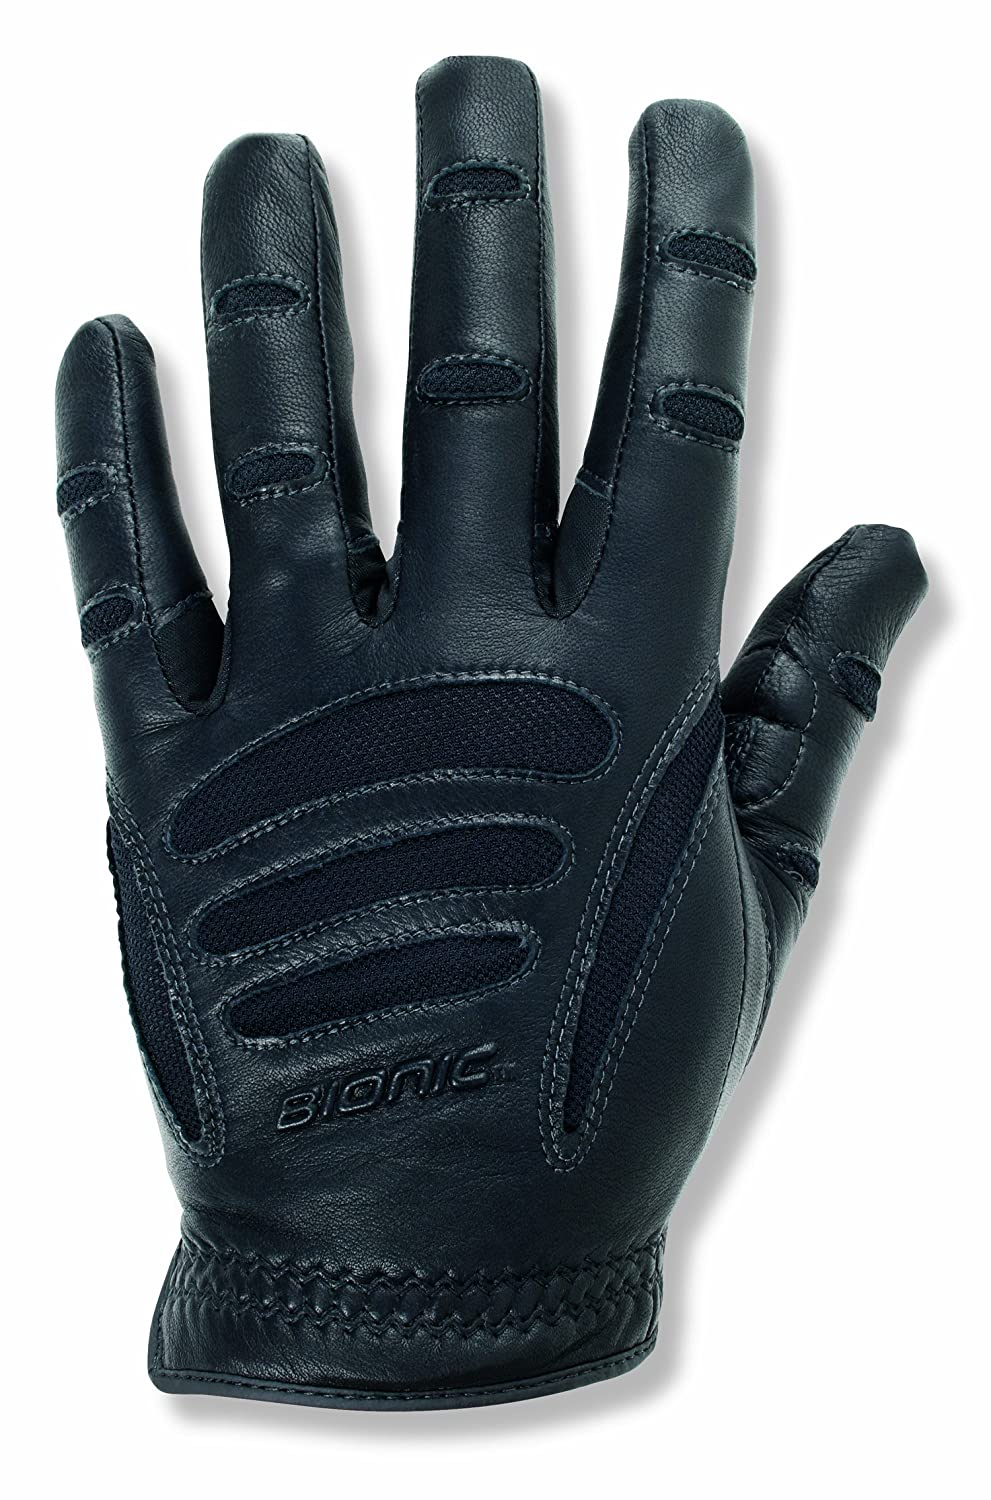 Mens gloves use iphone - Mens Gloves Use Iphone 11